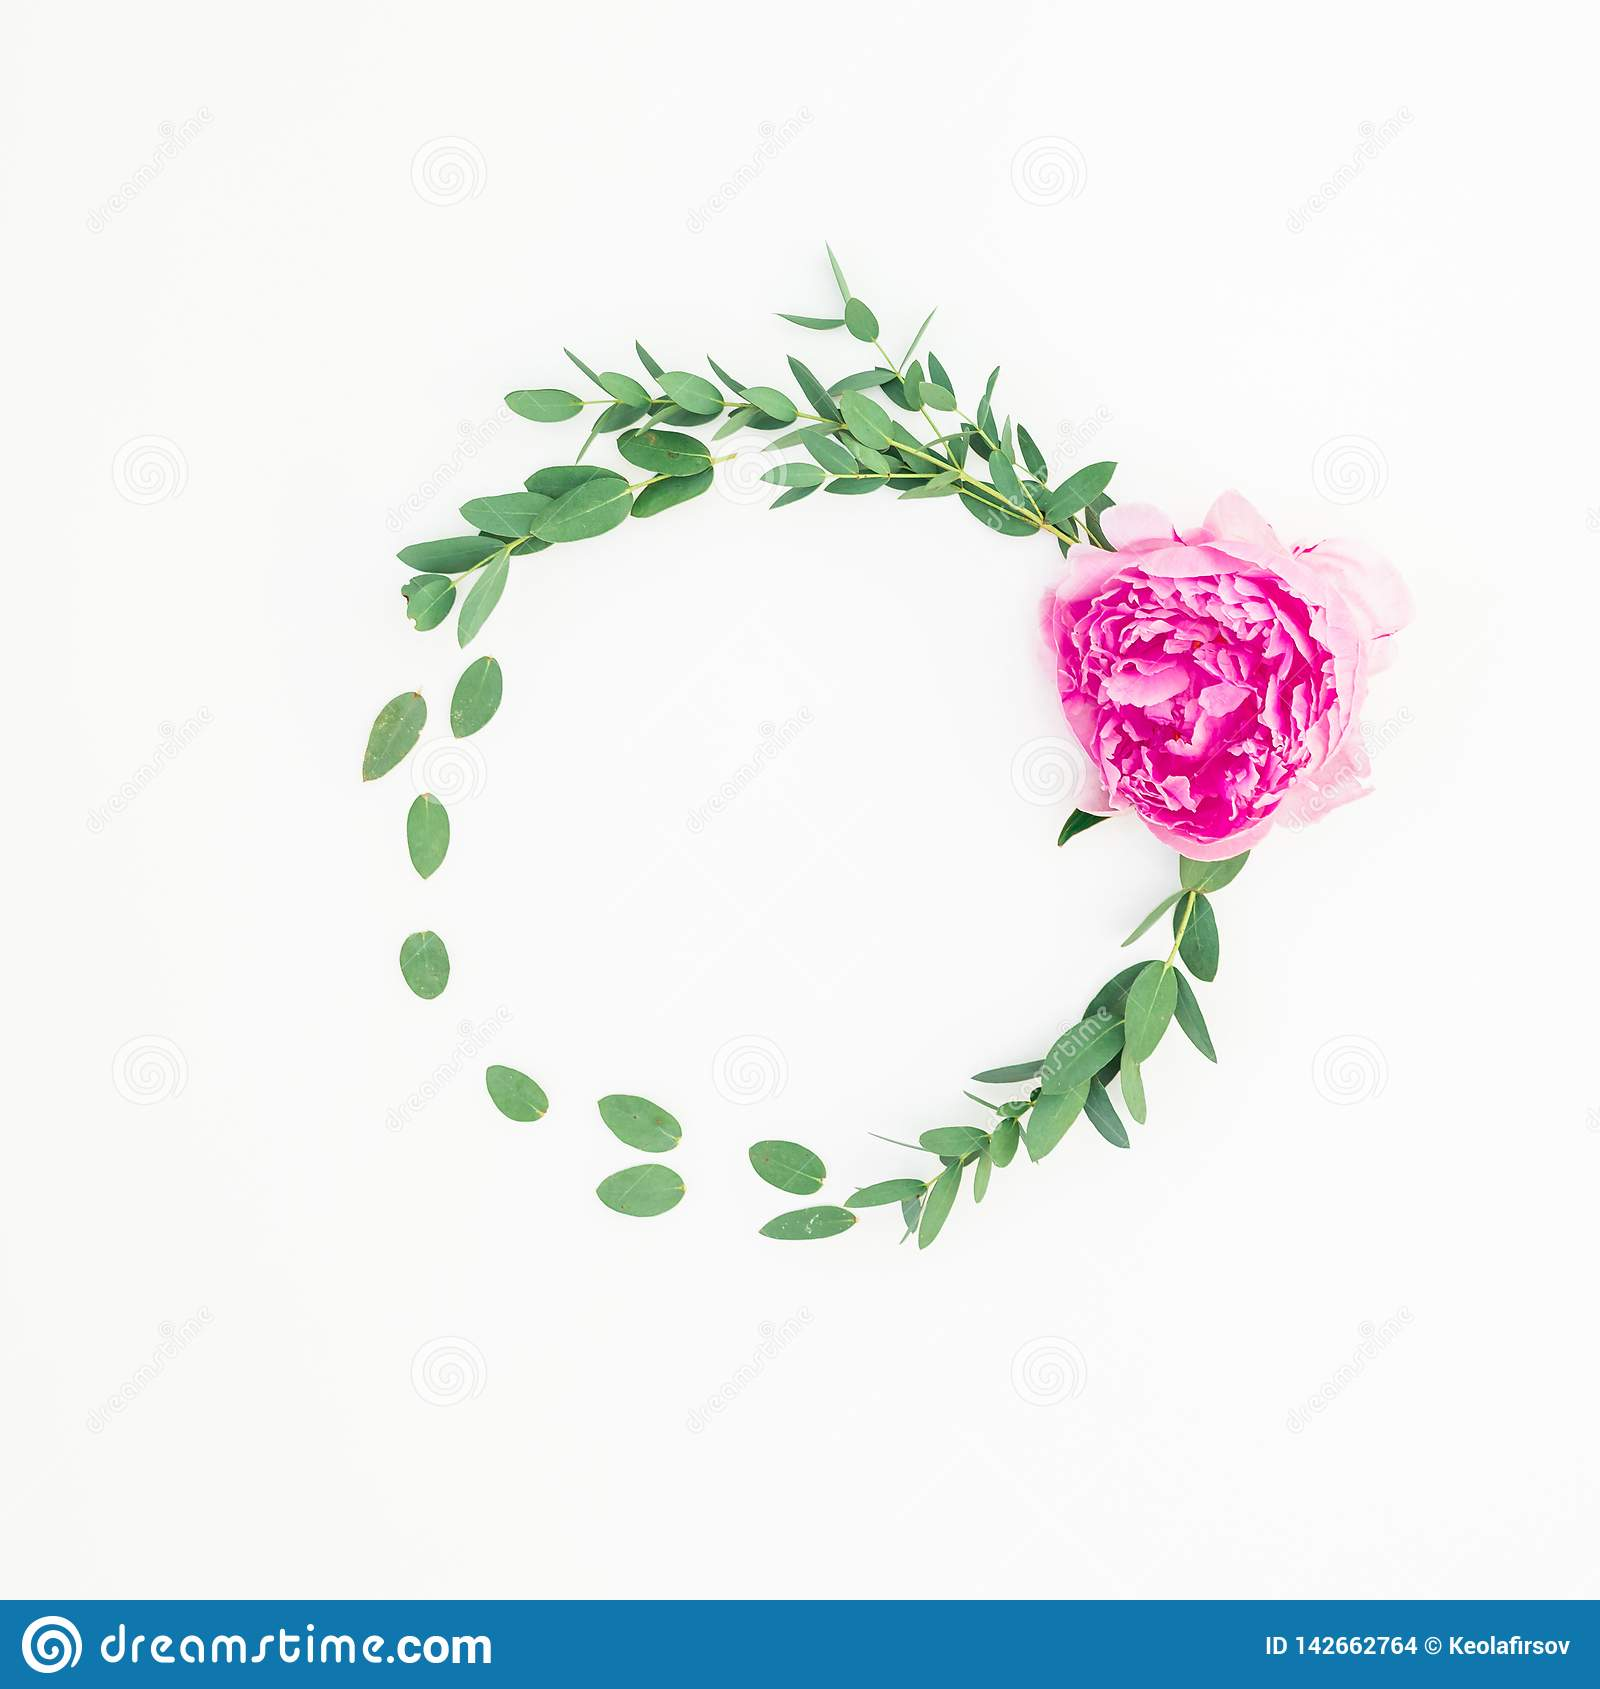 Floral round frame with pink peony flower, hypericum and eucalyptus on white background